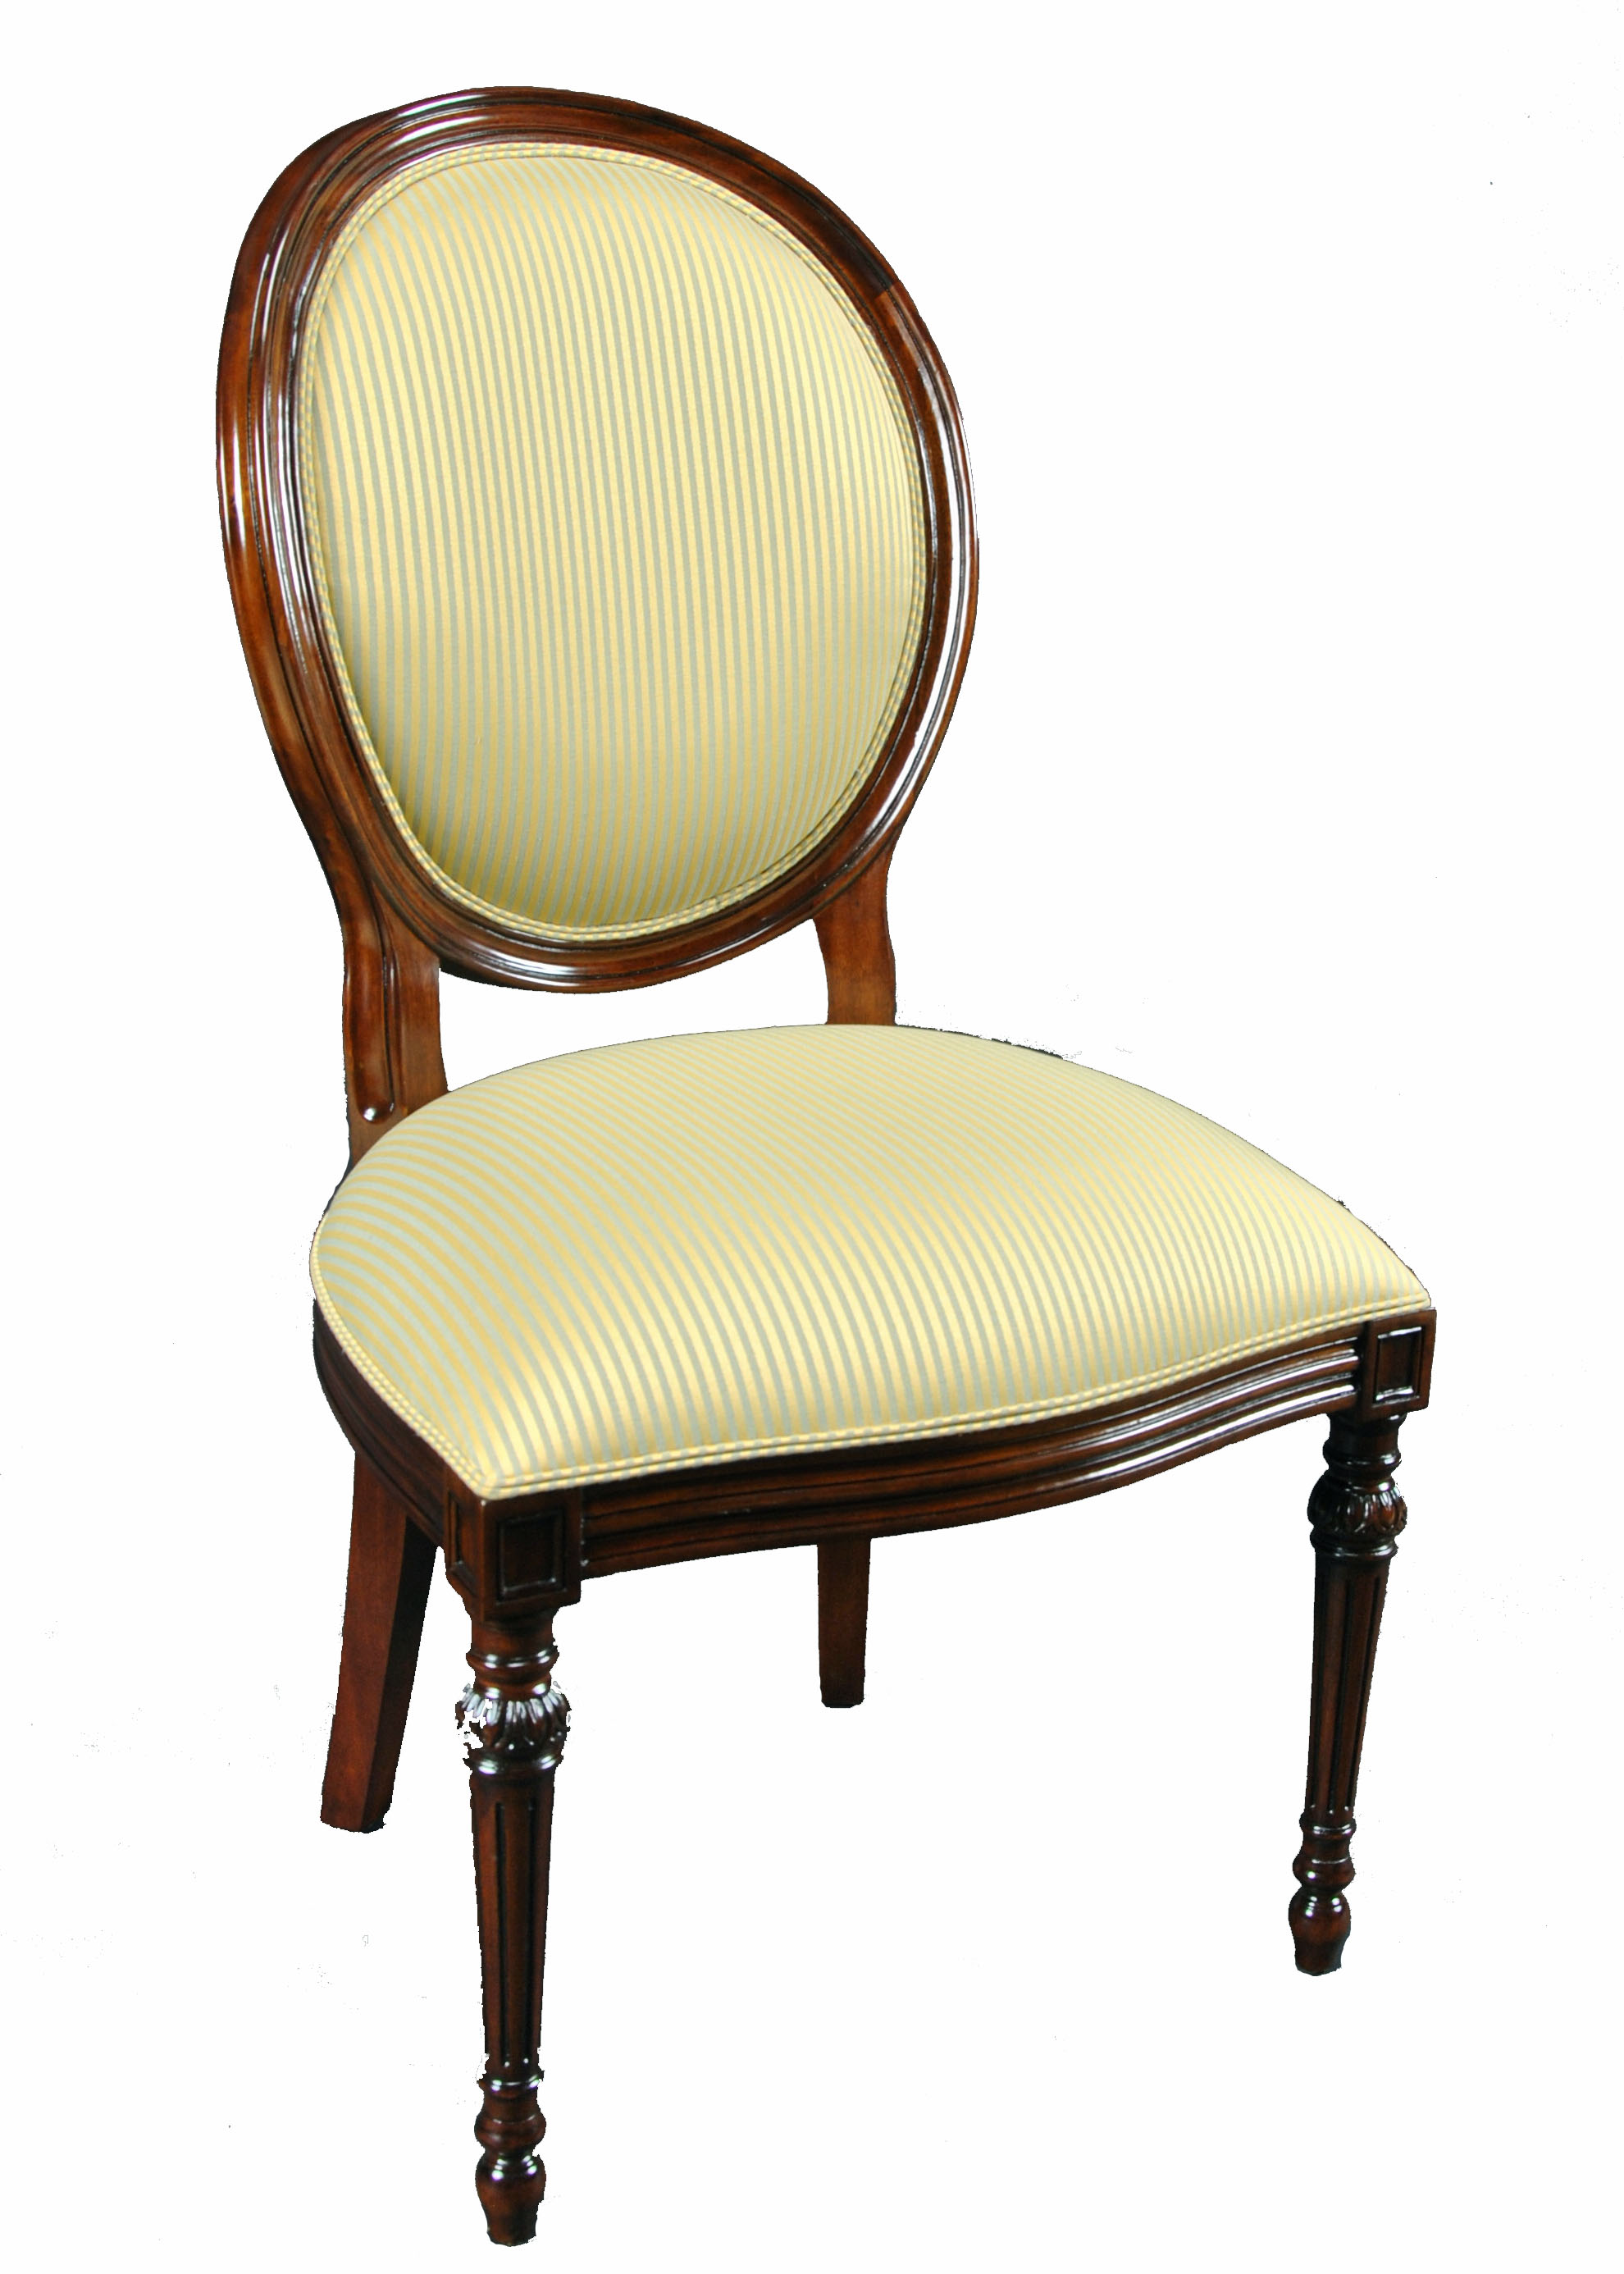 dining end chairs pink throne chair set of 8 upholstered oval back mahogany wood classic